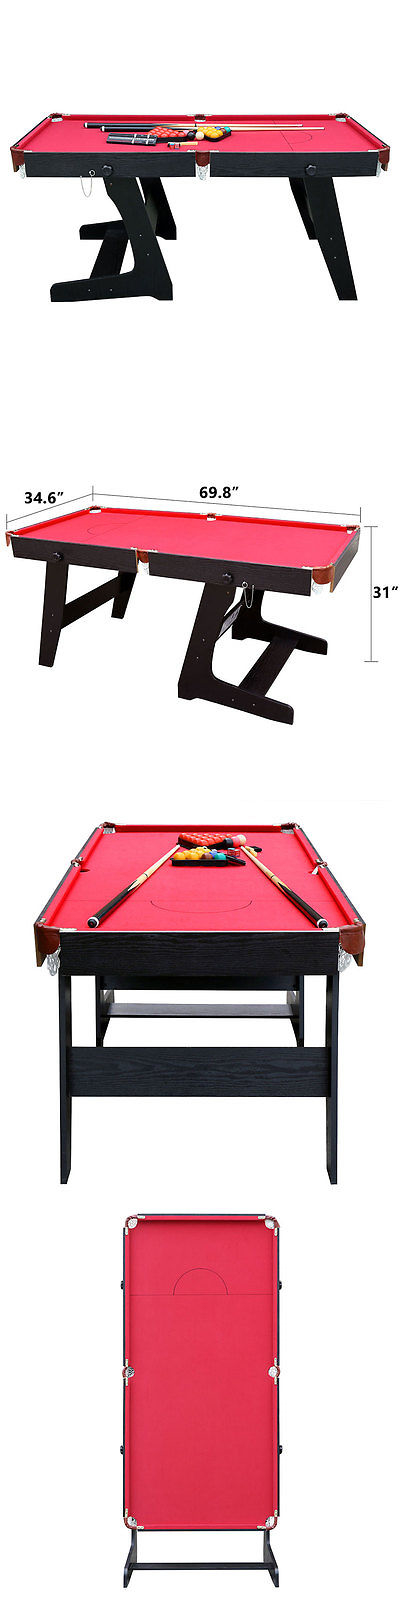 Tables Professional Folding Snooker Billiards Table With Pool - Outdoor pool table ebay